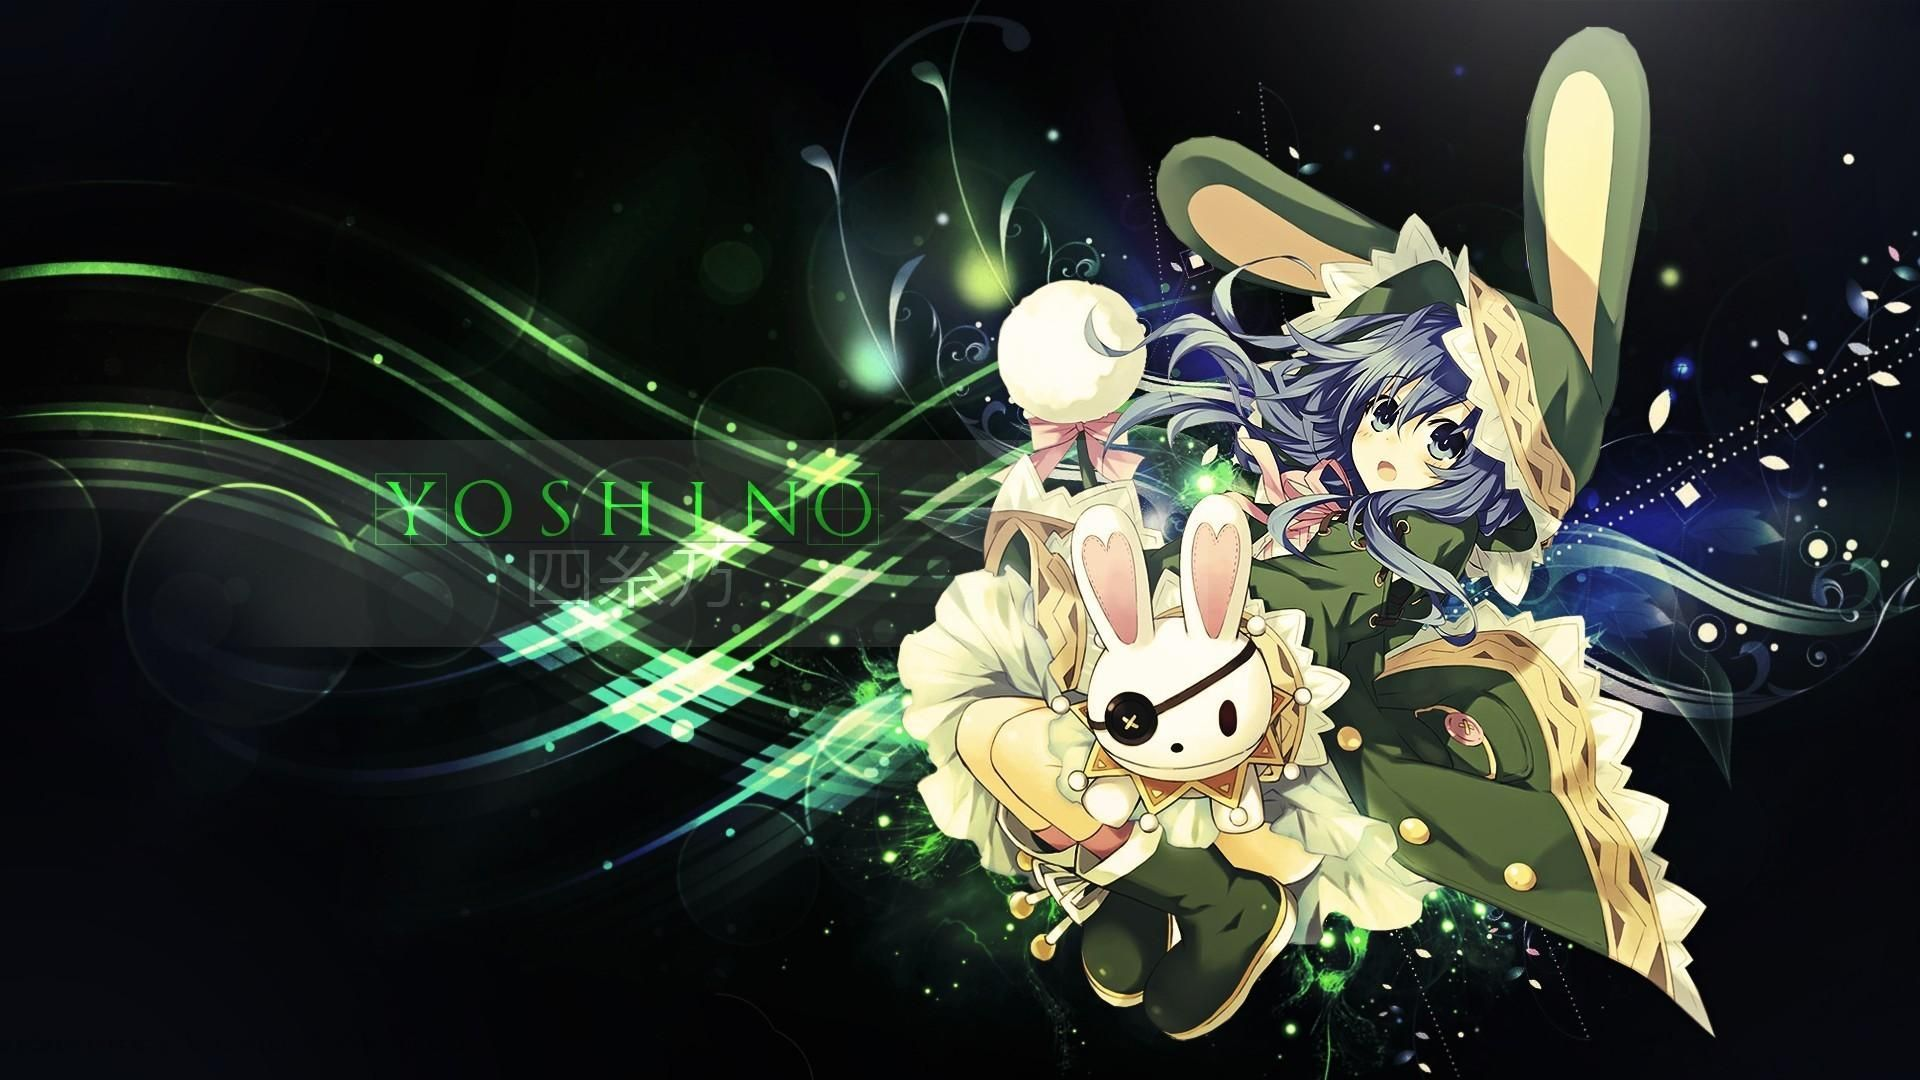 Date A Live Anime Wallpapers Top Free Date A Live Anime Backgrounds Wallpaperaccess